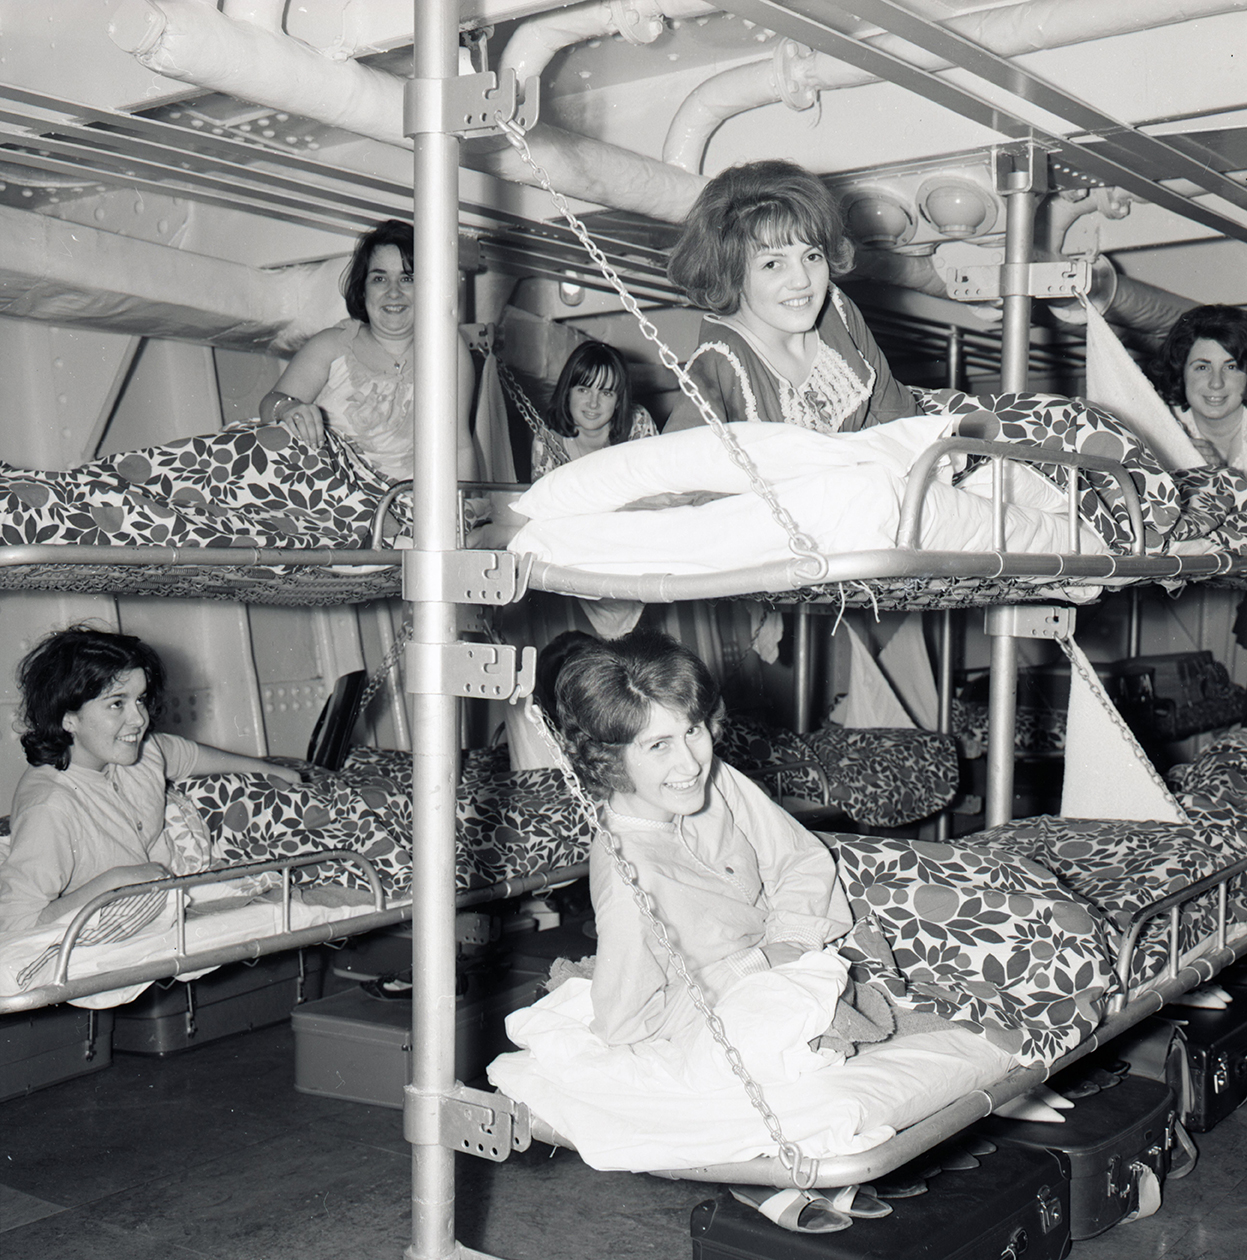 six women sleep on bunk bets in a vintage cruise ship